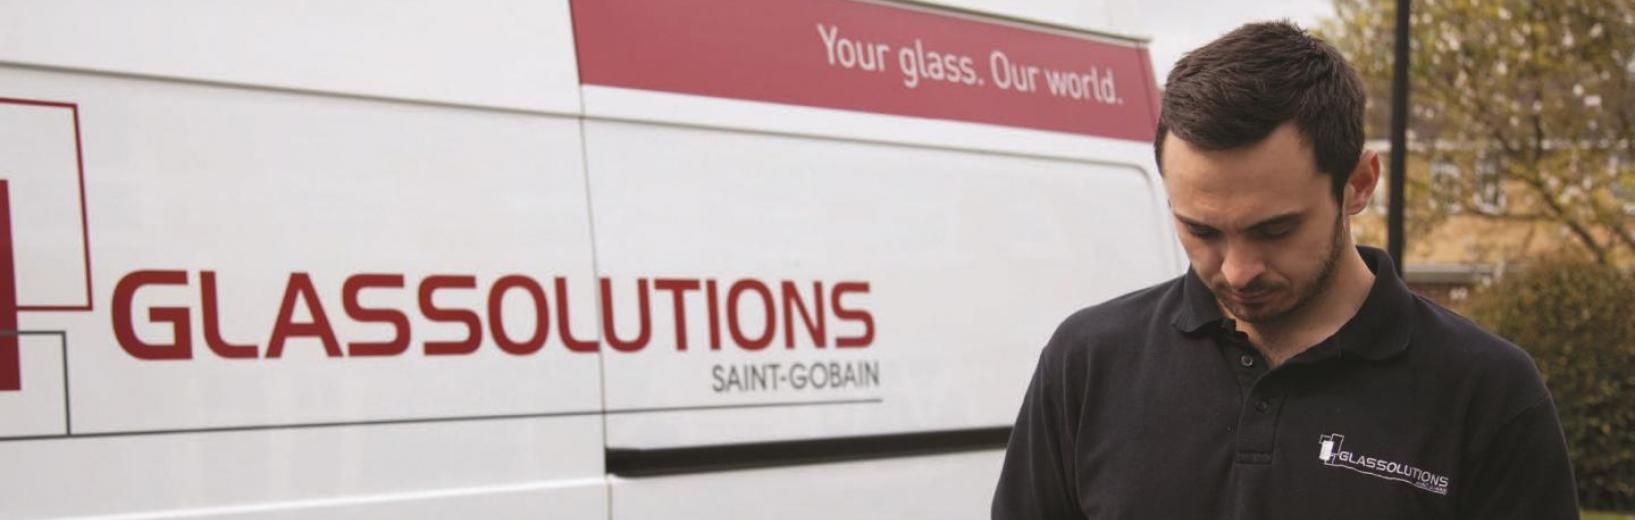 glassolutions-van